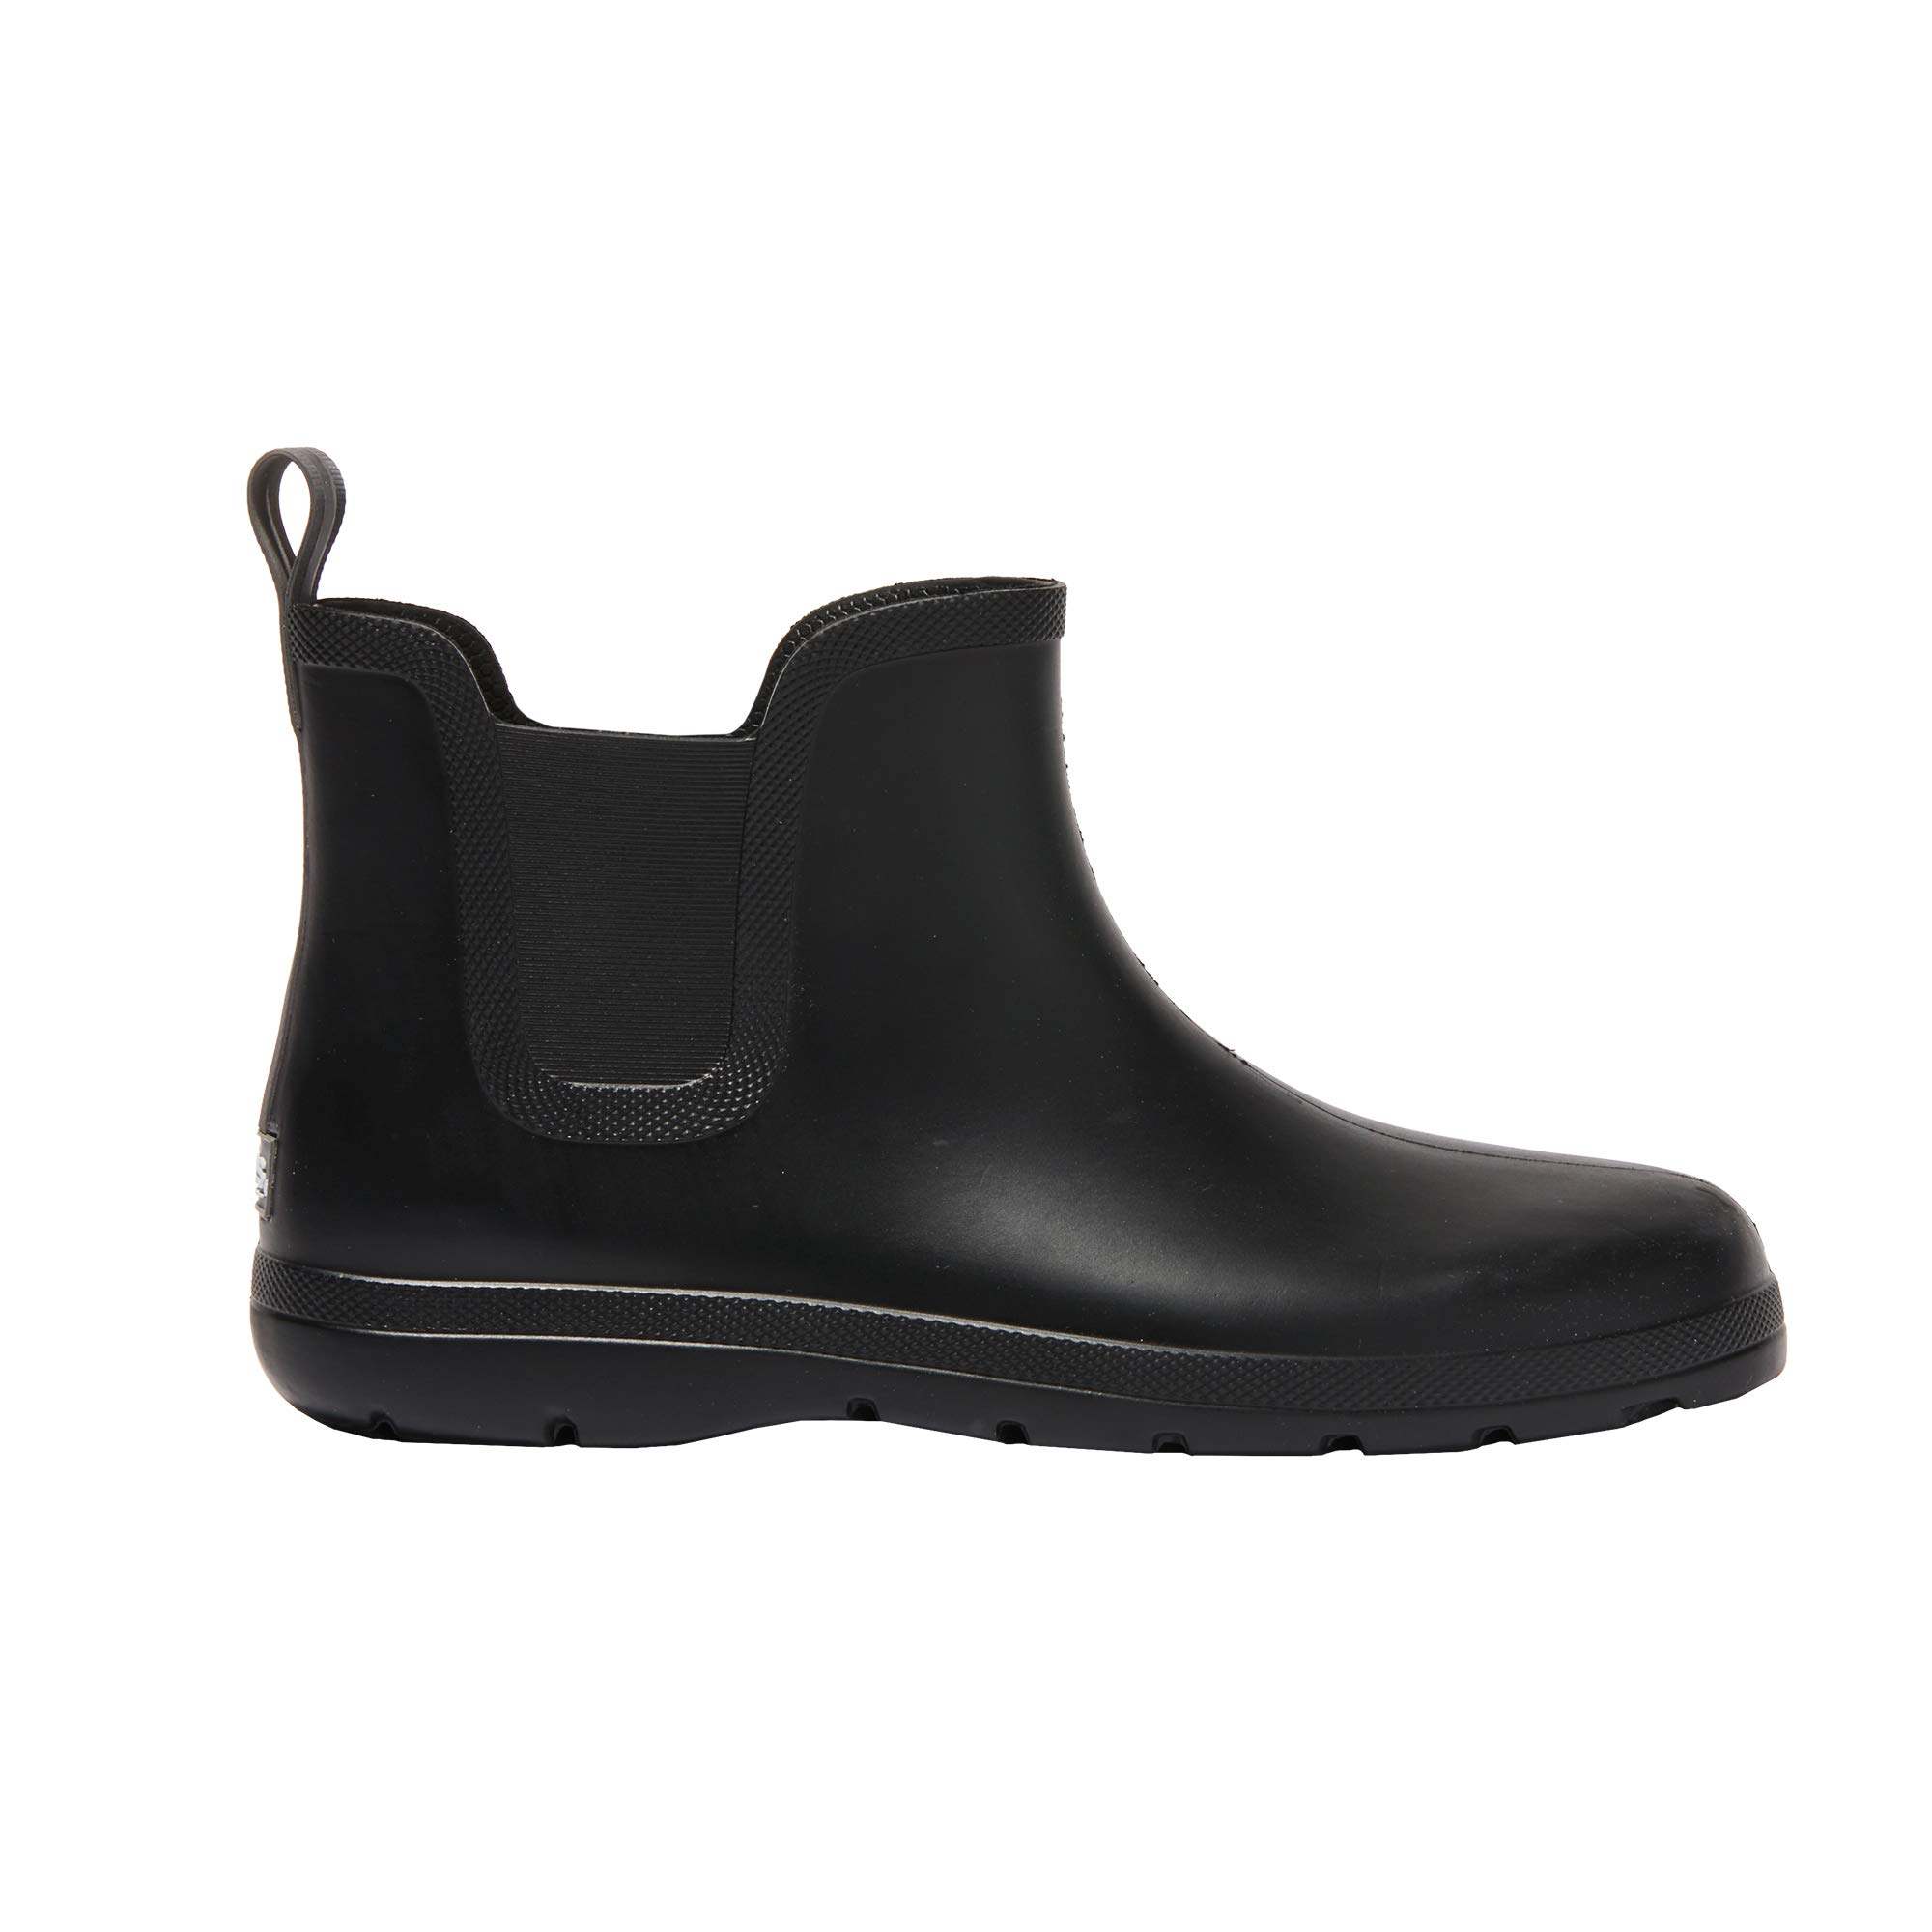 totes Men's Cirrus Chelsea Ankle Rain Boot, Black, 11 by totes